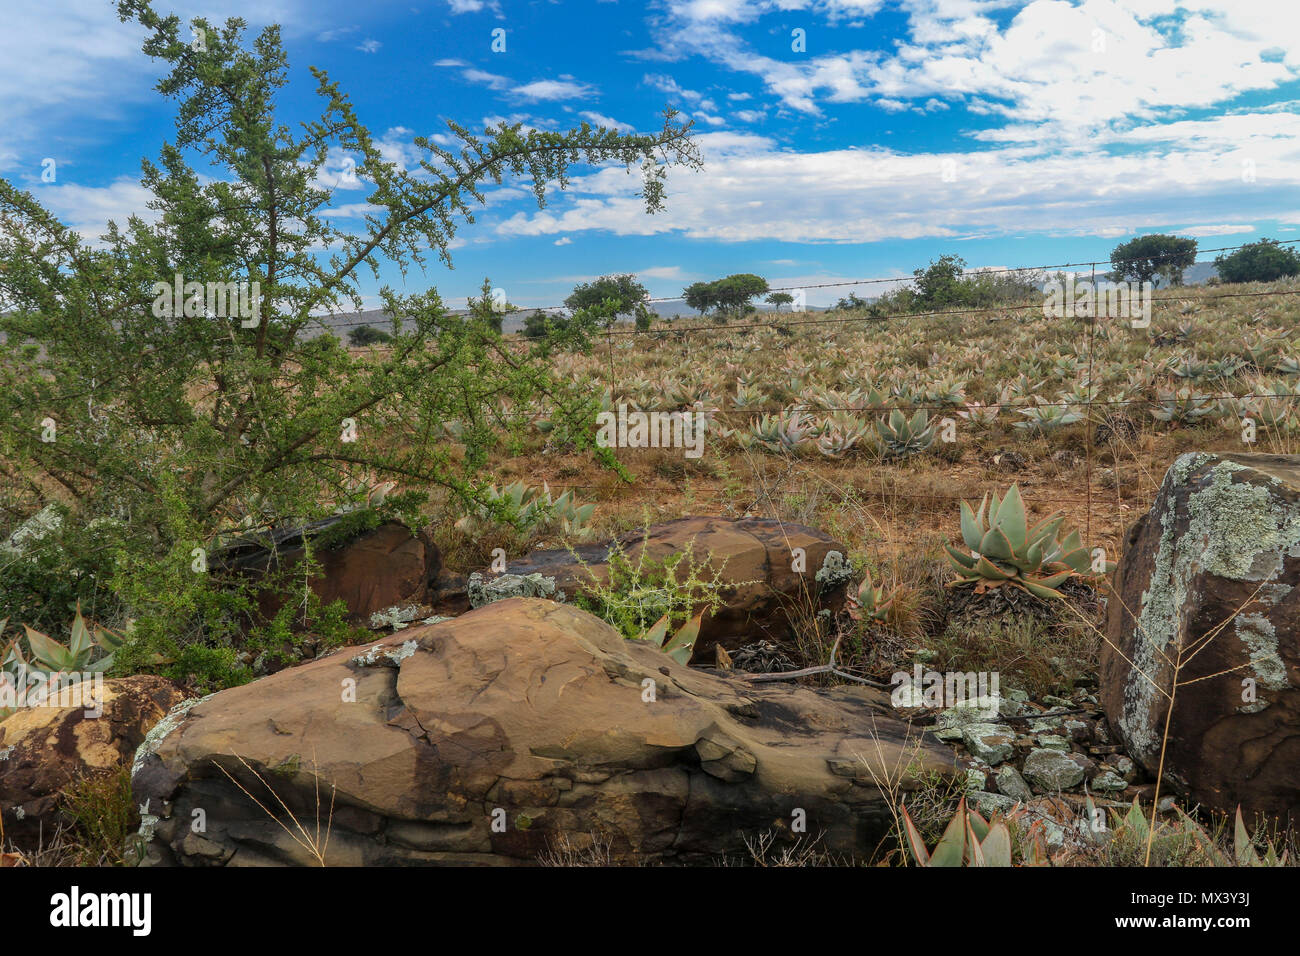 Winter landscape in South Africa with succulents, blue sky and acacia. The Addo Elephant National Park, eastern cape, south Africa - Stock Image